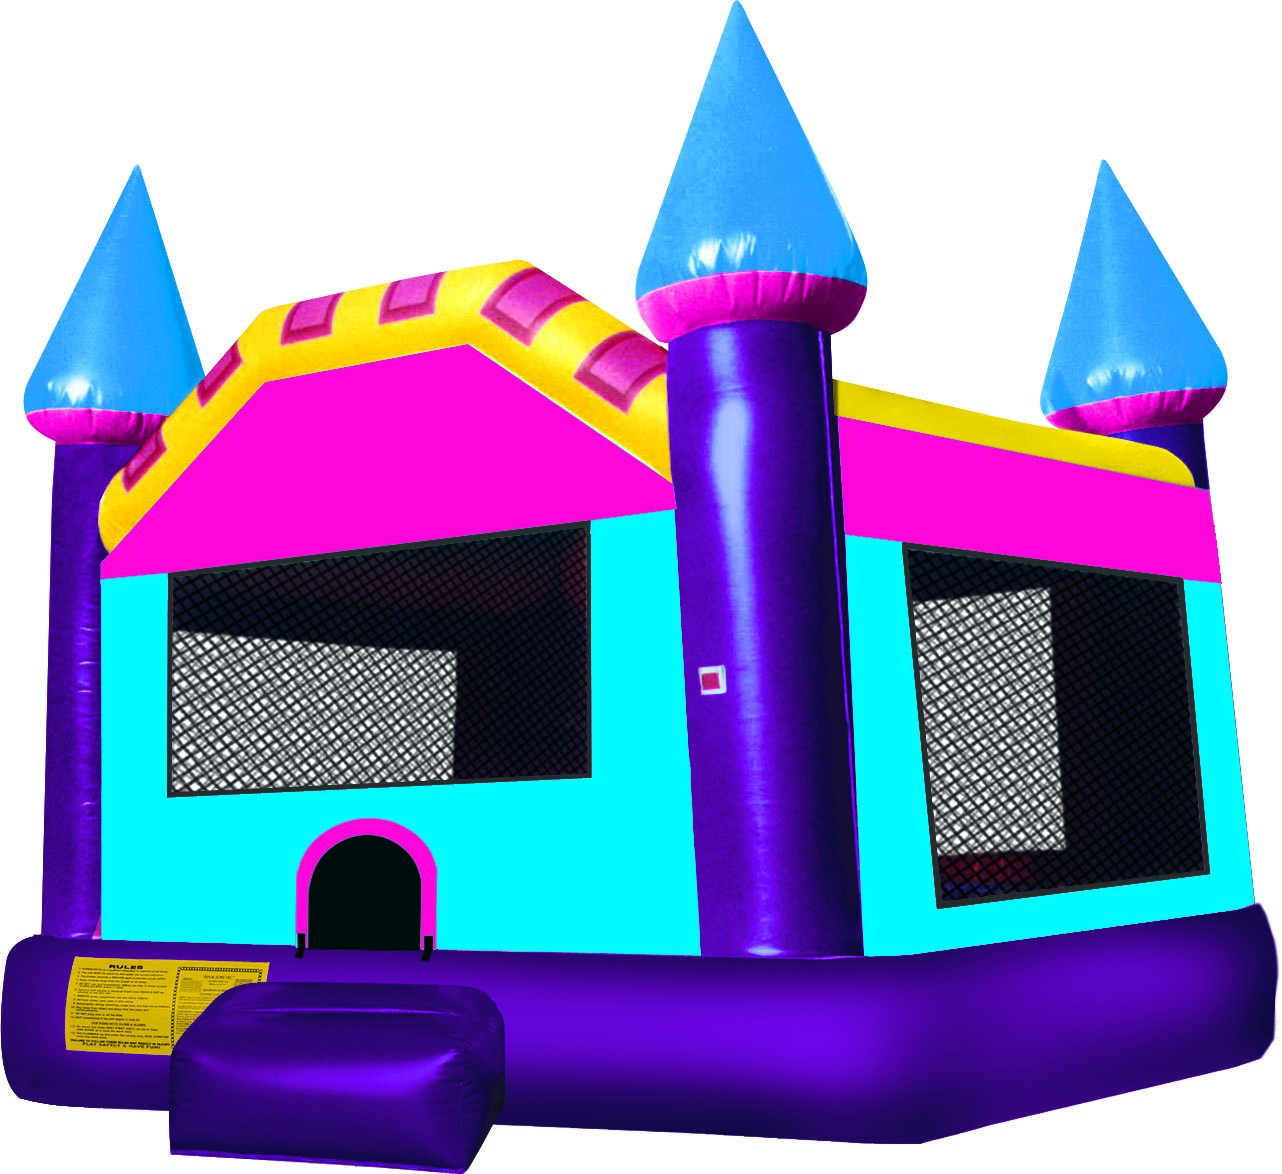 Waterslid bouncy house clipart